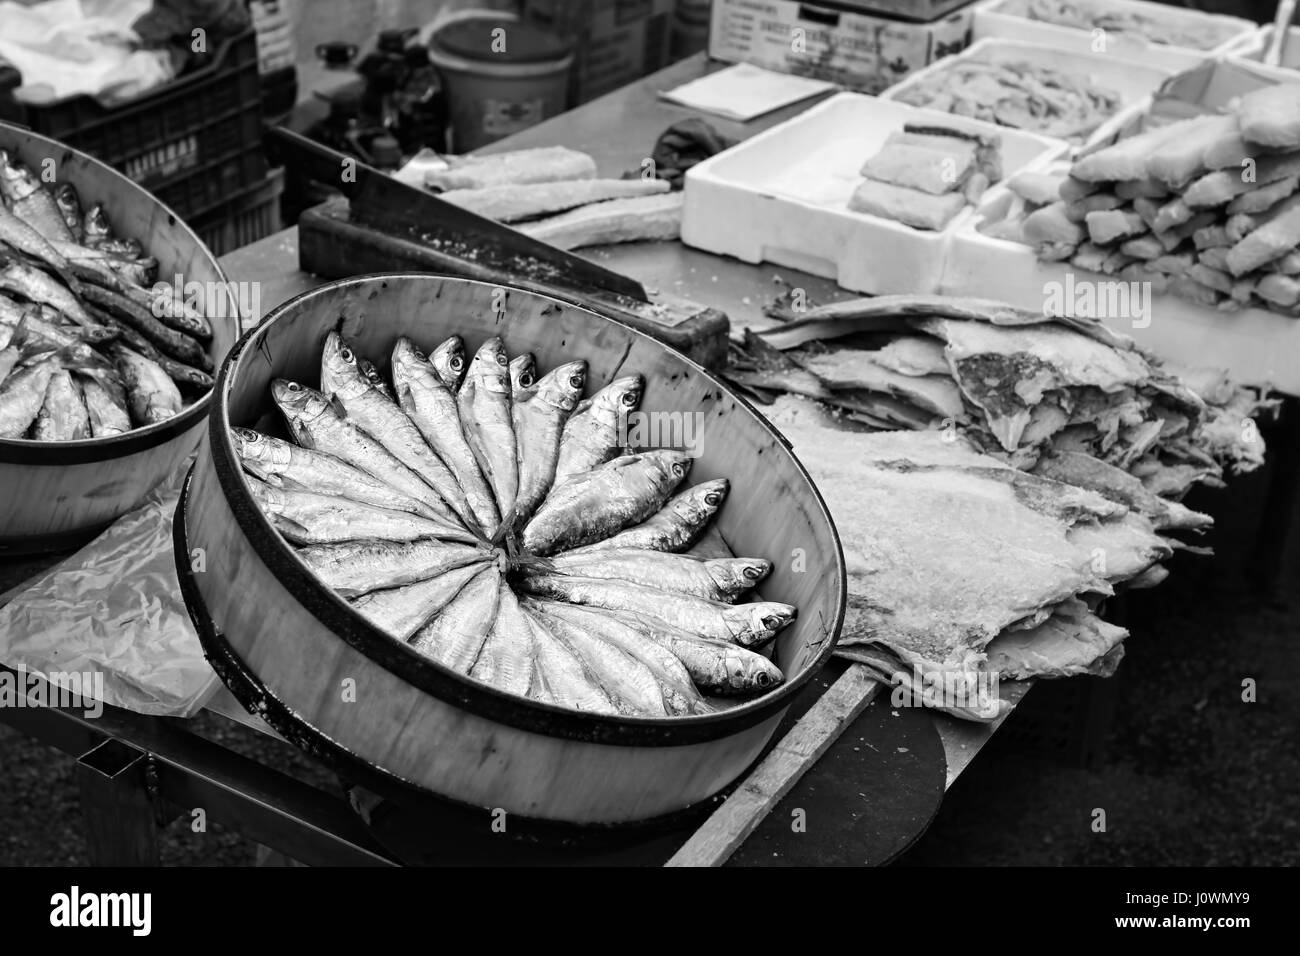 Sardines and different kind of fish on food market, Majorca, Balearic Islands - Stock Image